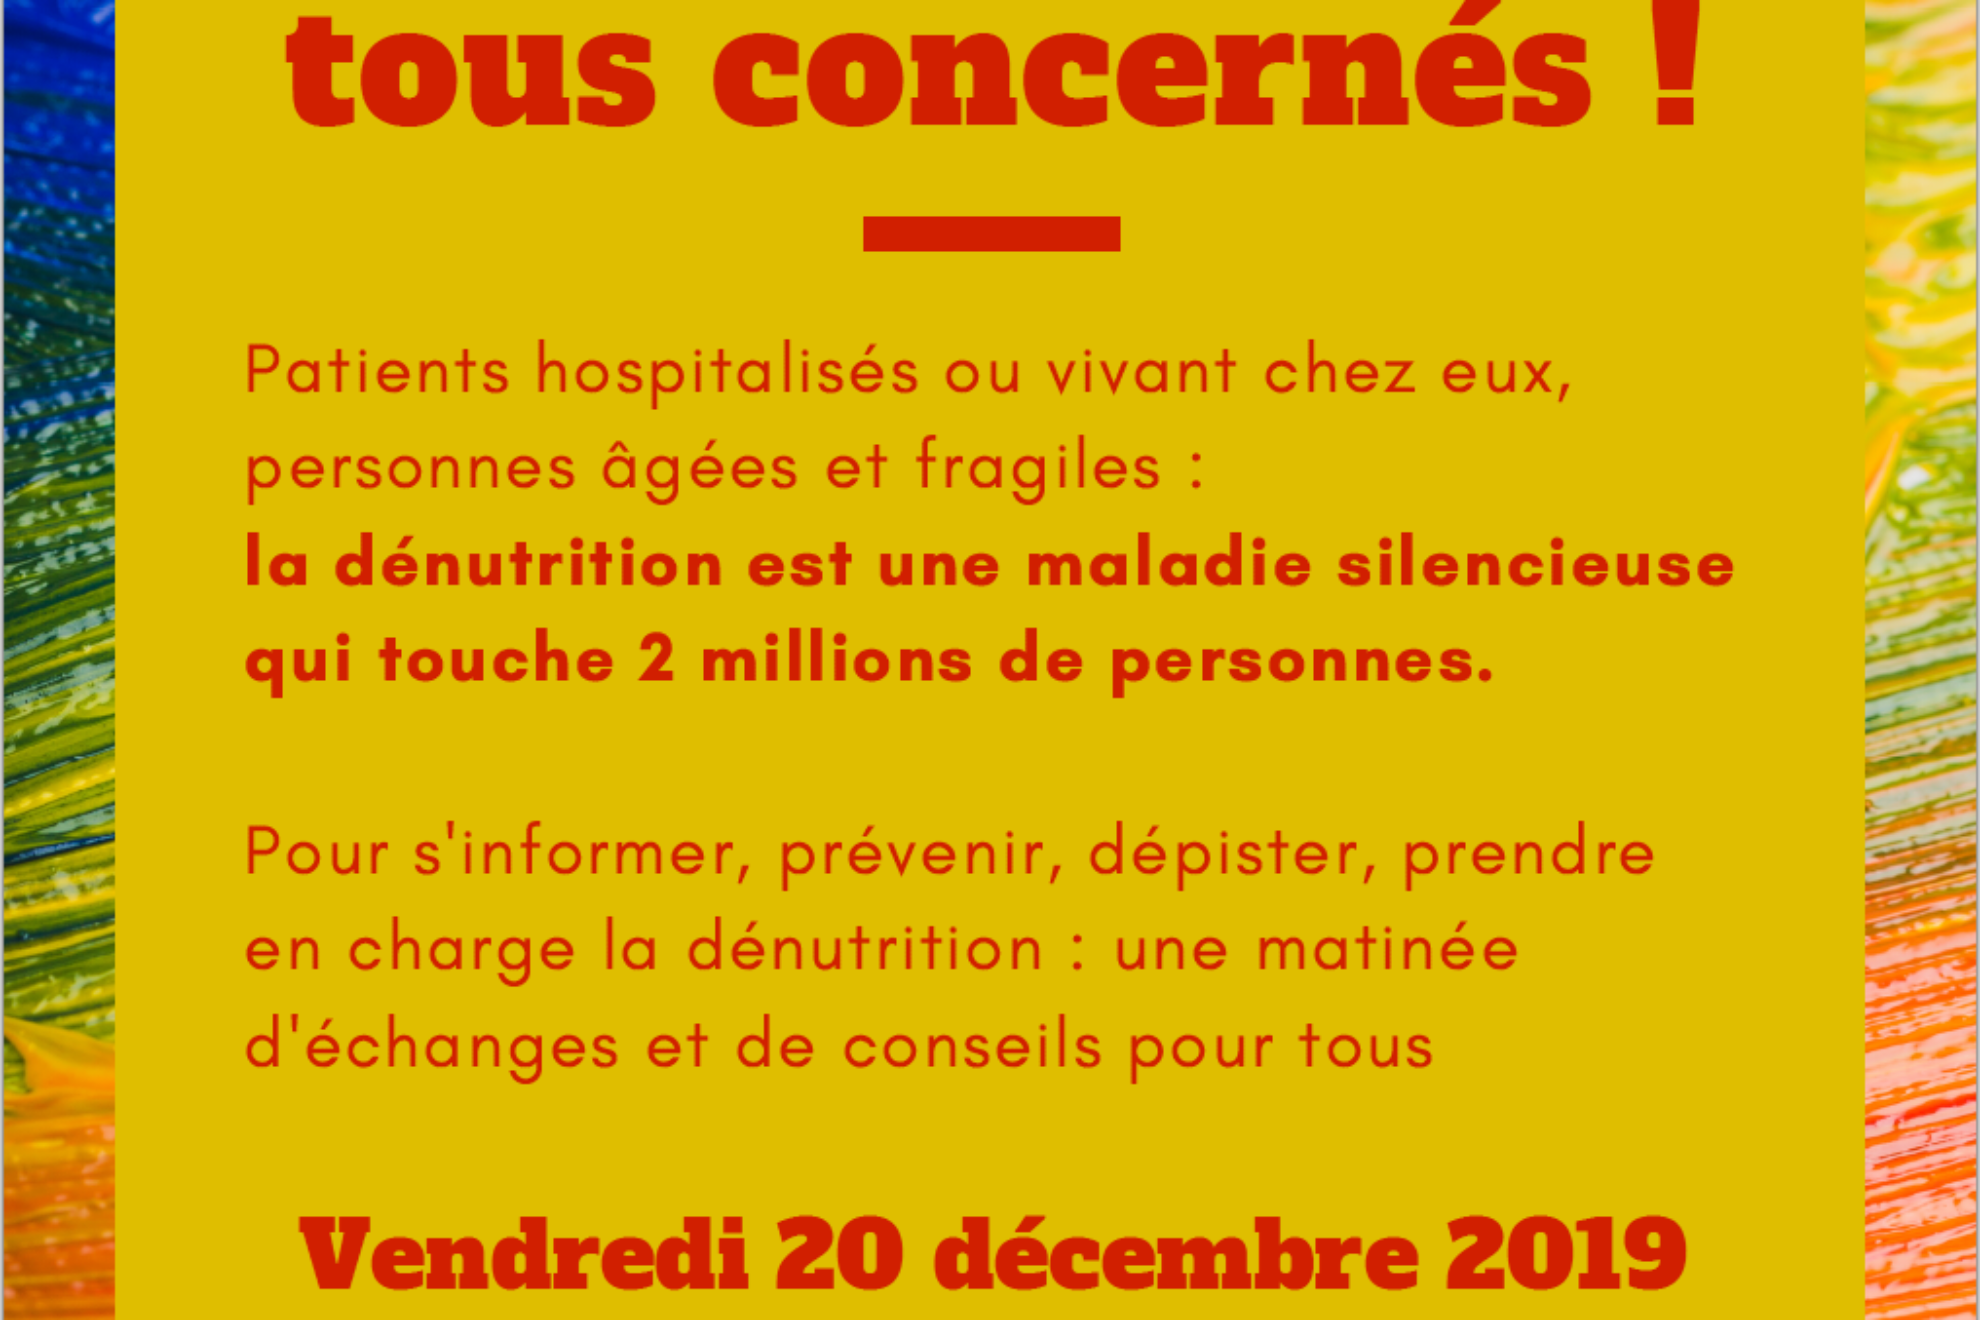 synthese-de-notre-journee-nationale-du-20-decembre-2019-a-nice